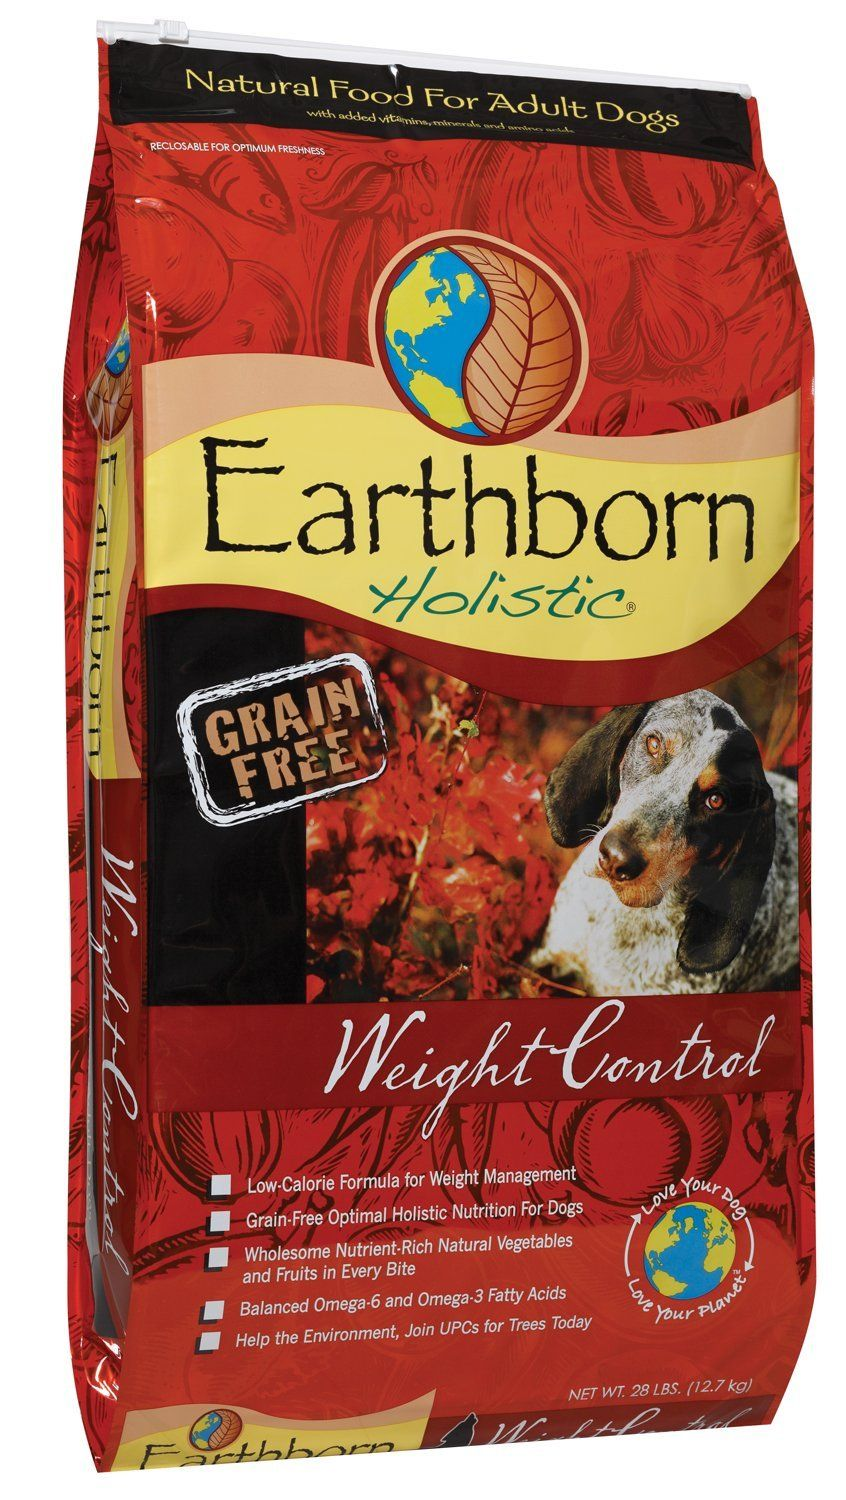 Wells Pet Food Earthborn Holistic Natural Food For Pet Weight